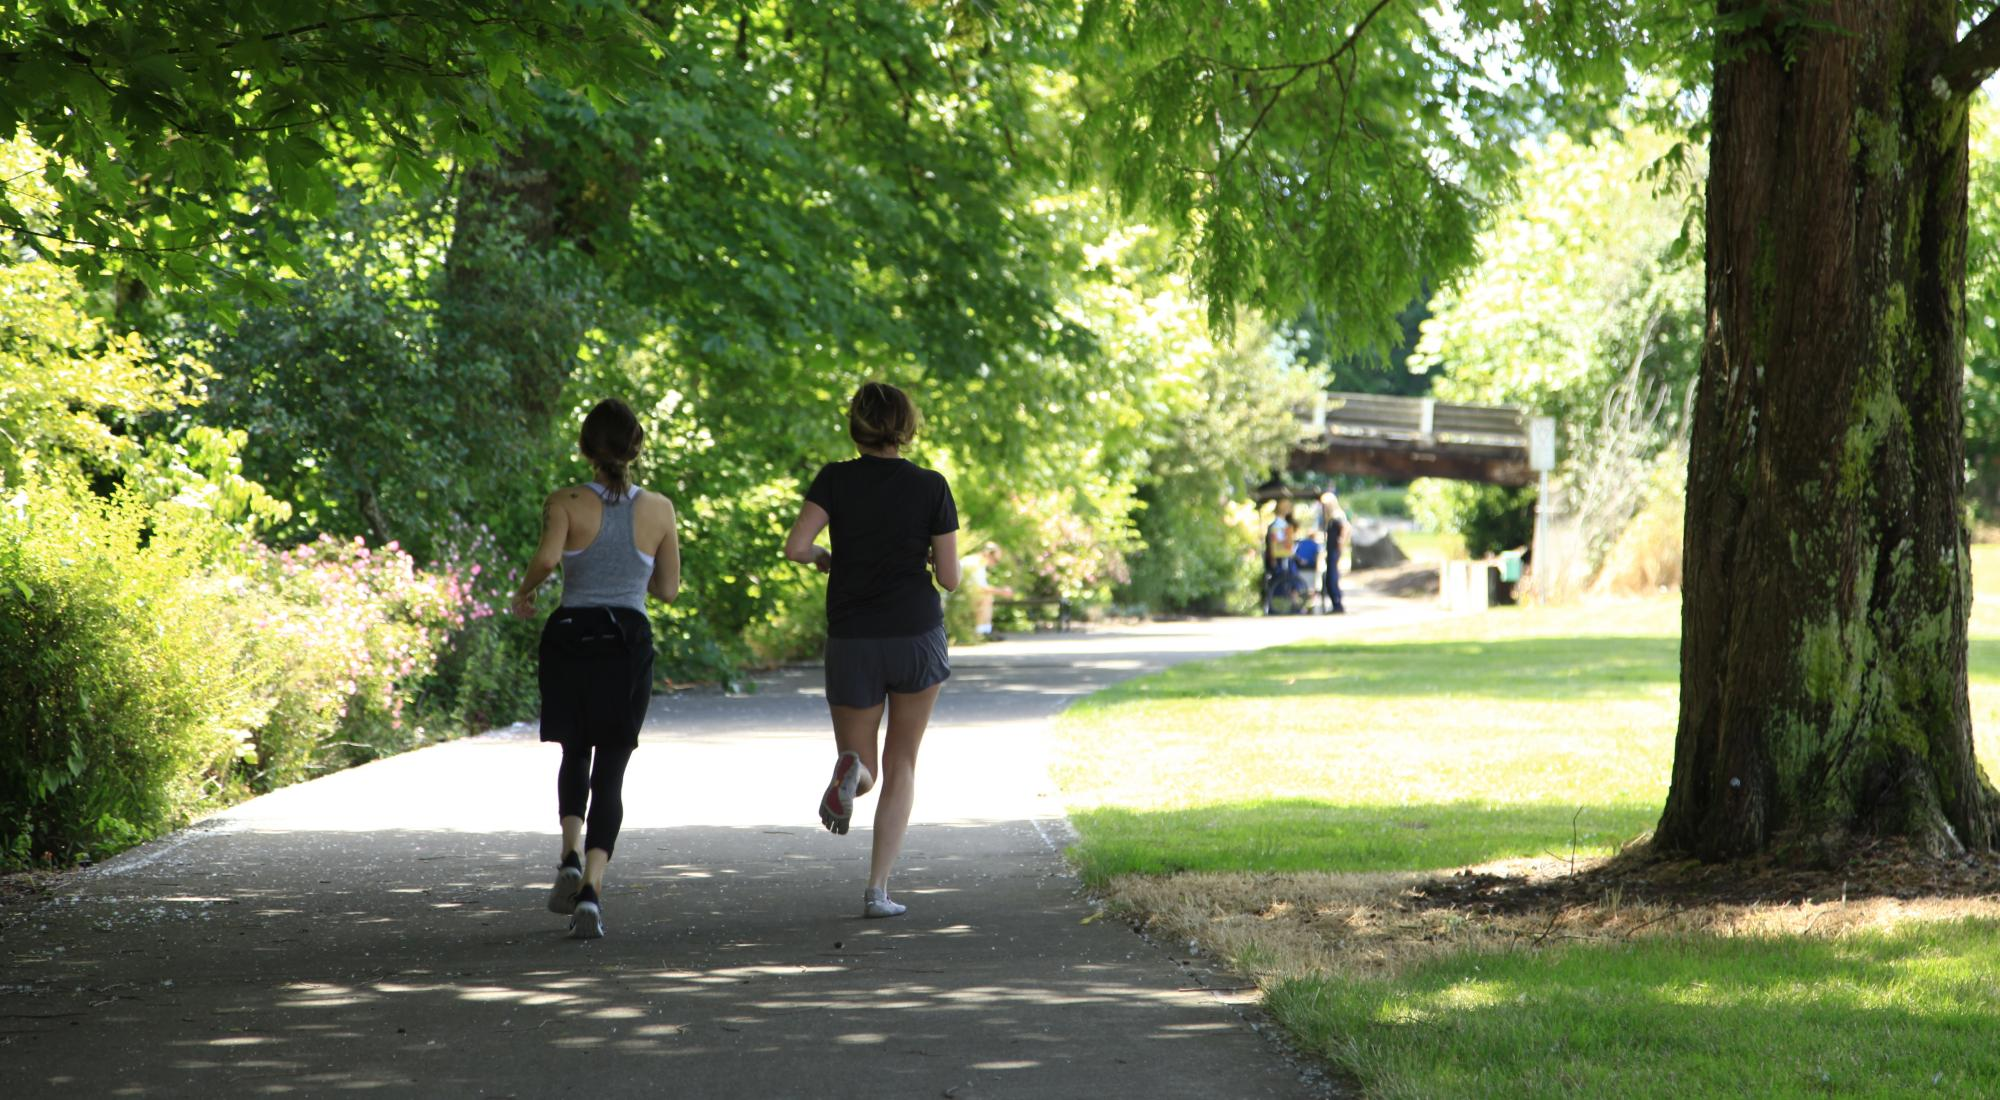 Two women running in downtown Corvallis, surrounded by lush trees